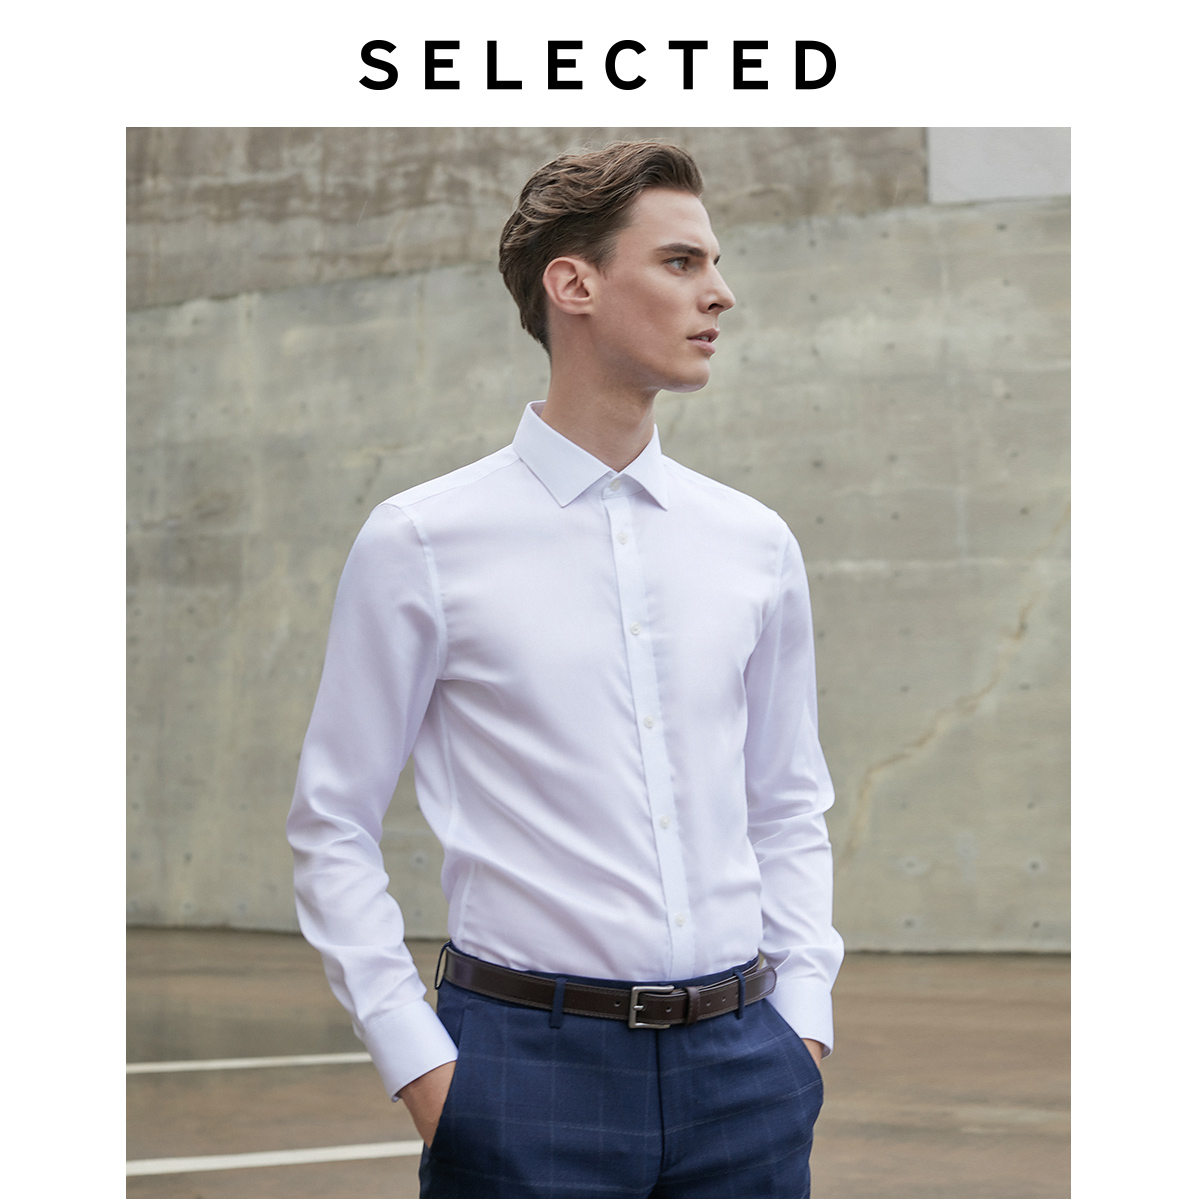 SELECTED Men's 100% Cotton Slim Fit Long-sleeved Shirt T|419305501